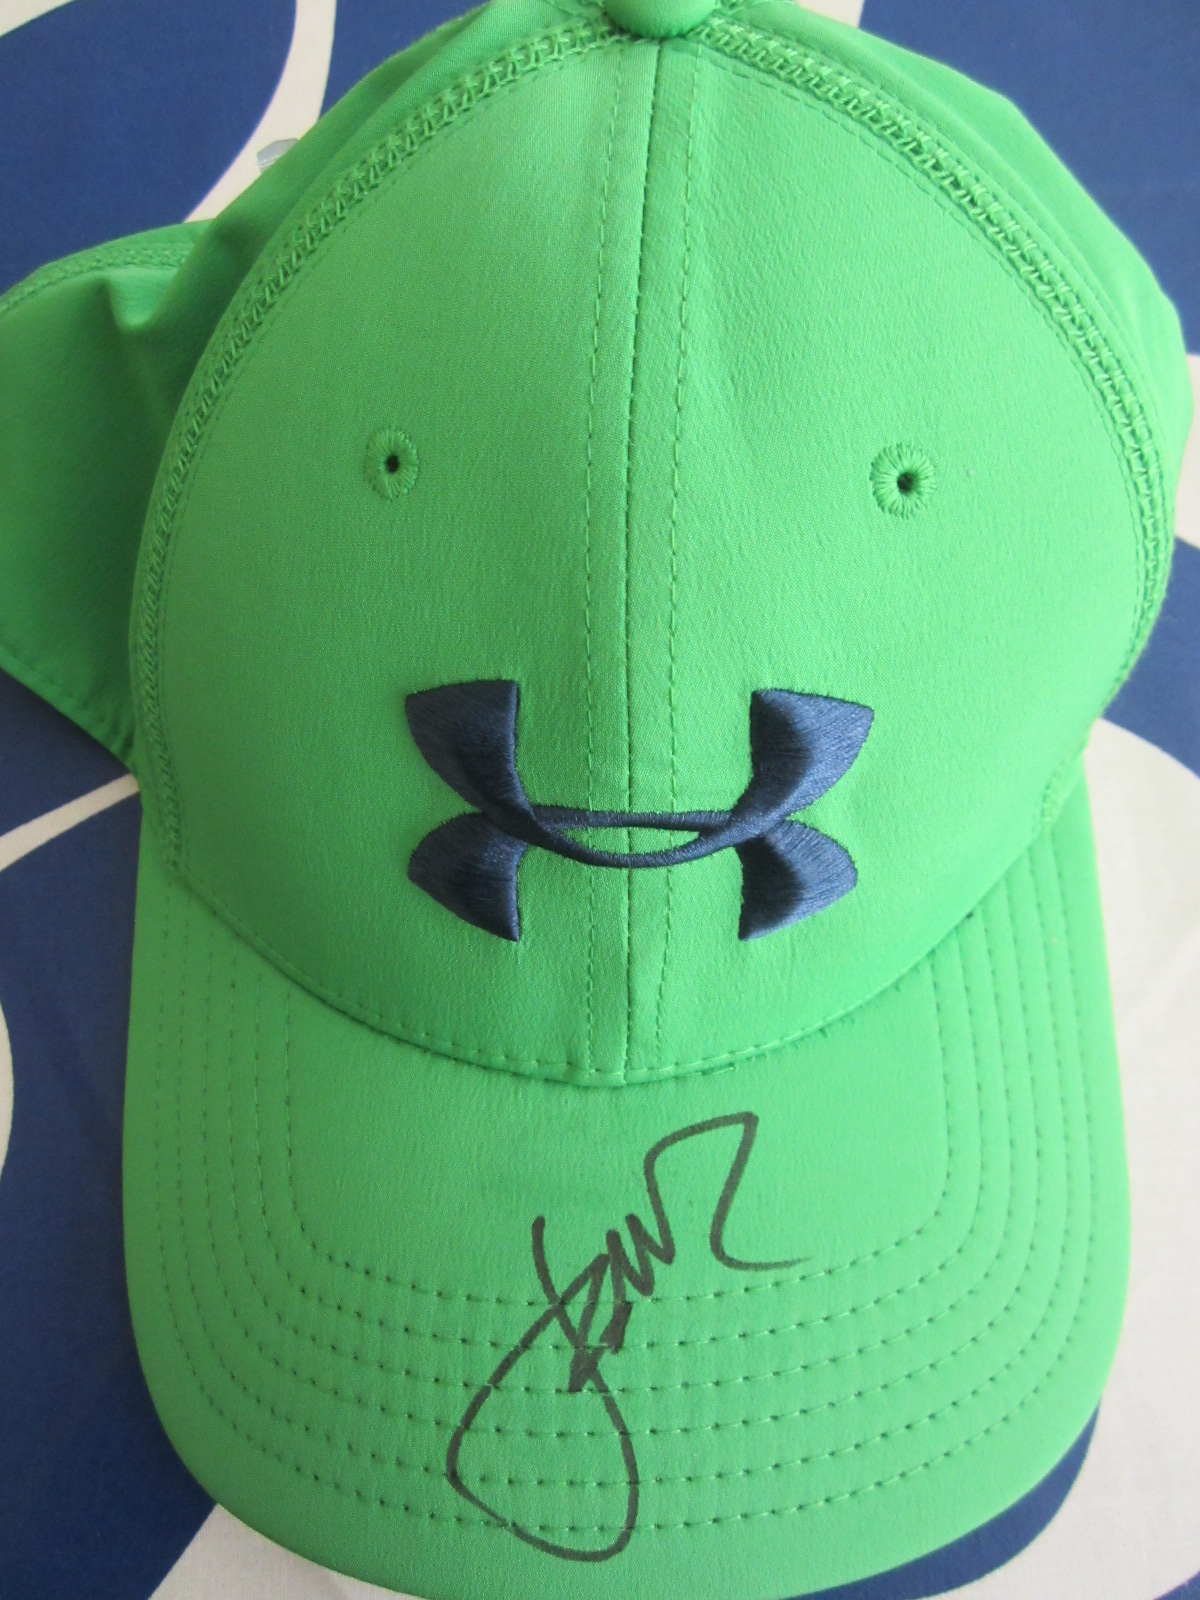 online store 62067 9ae0f ... new zealand jordan spieth autographed under armour green cap or hat  64f3b 00a88